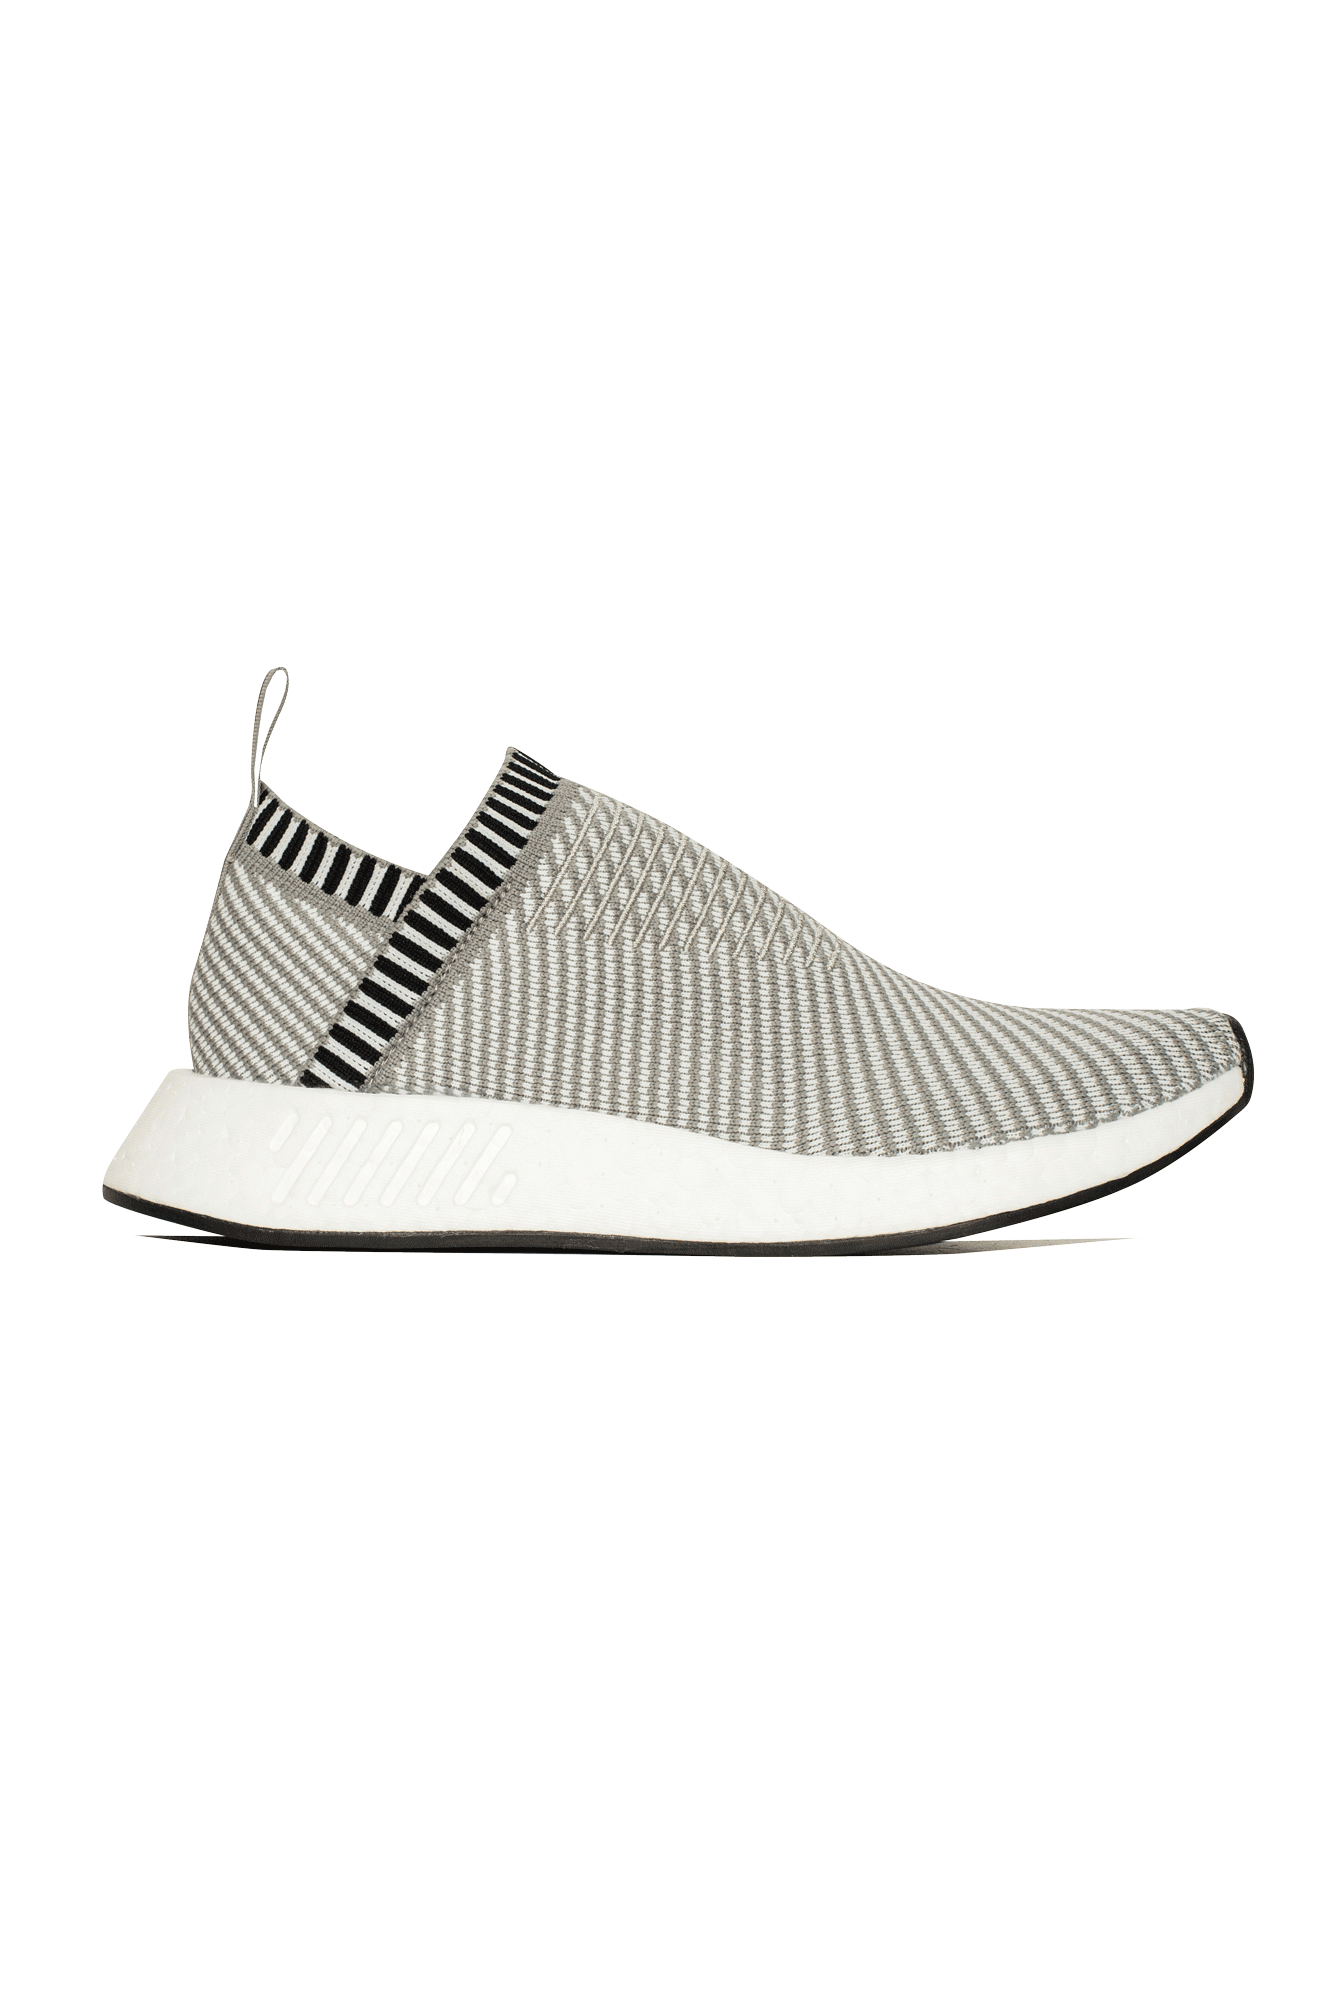 Adidas Originals Sneakers NMD CS2 PK Grey BA7187#000#C0009#6 One Block Down